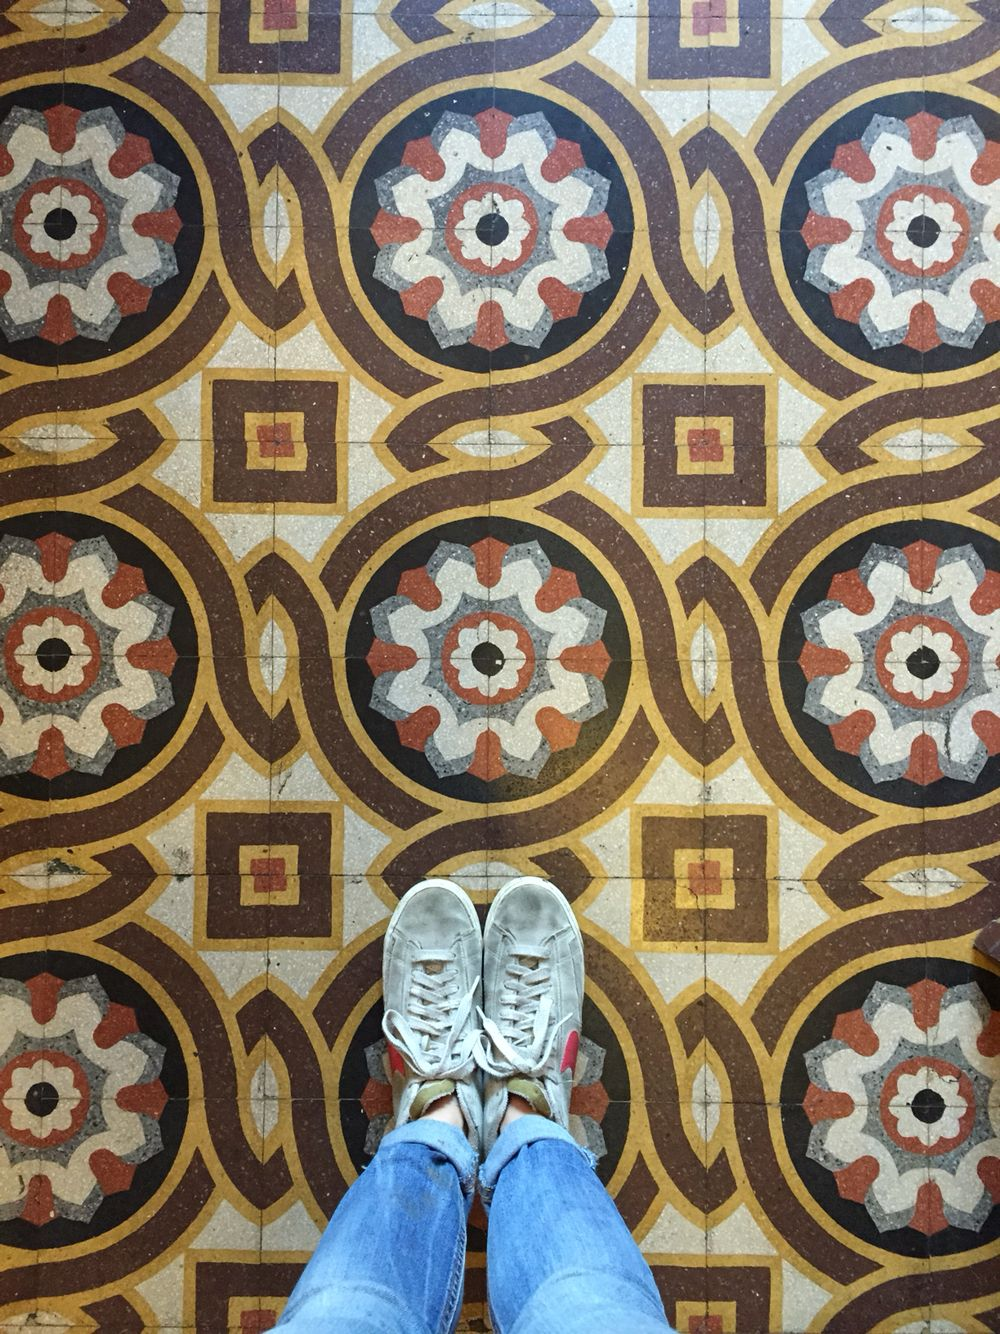 20- 8/15  #MAdesigner #walkingproject photography #pattern #texture #design #architecture project #madeinitaly #900 #art #sanpellegrinoterme #bg #bergamo #tiles #floor